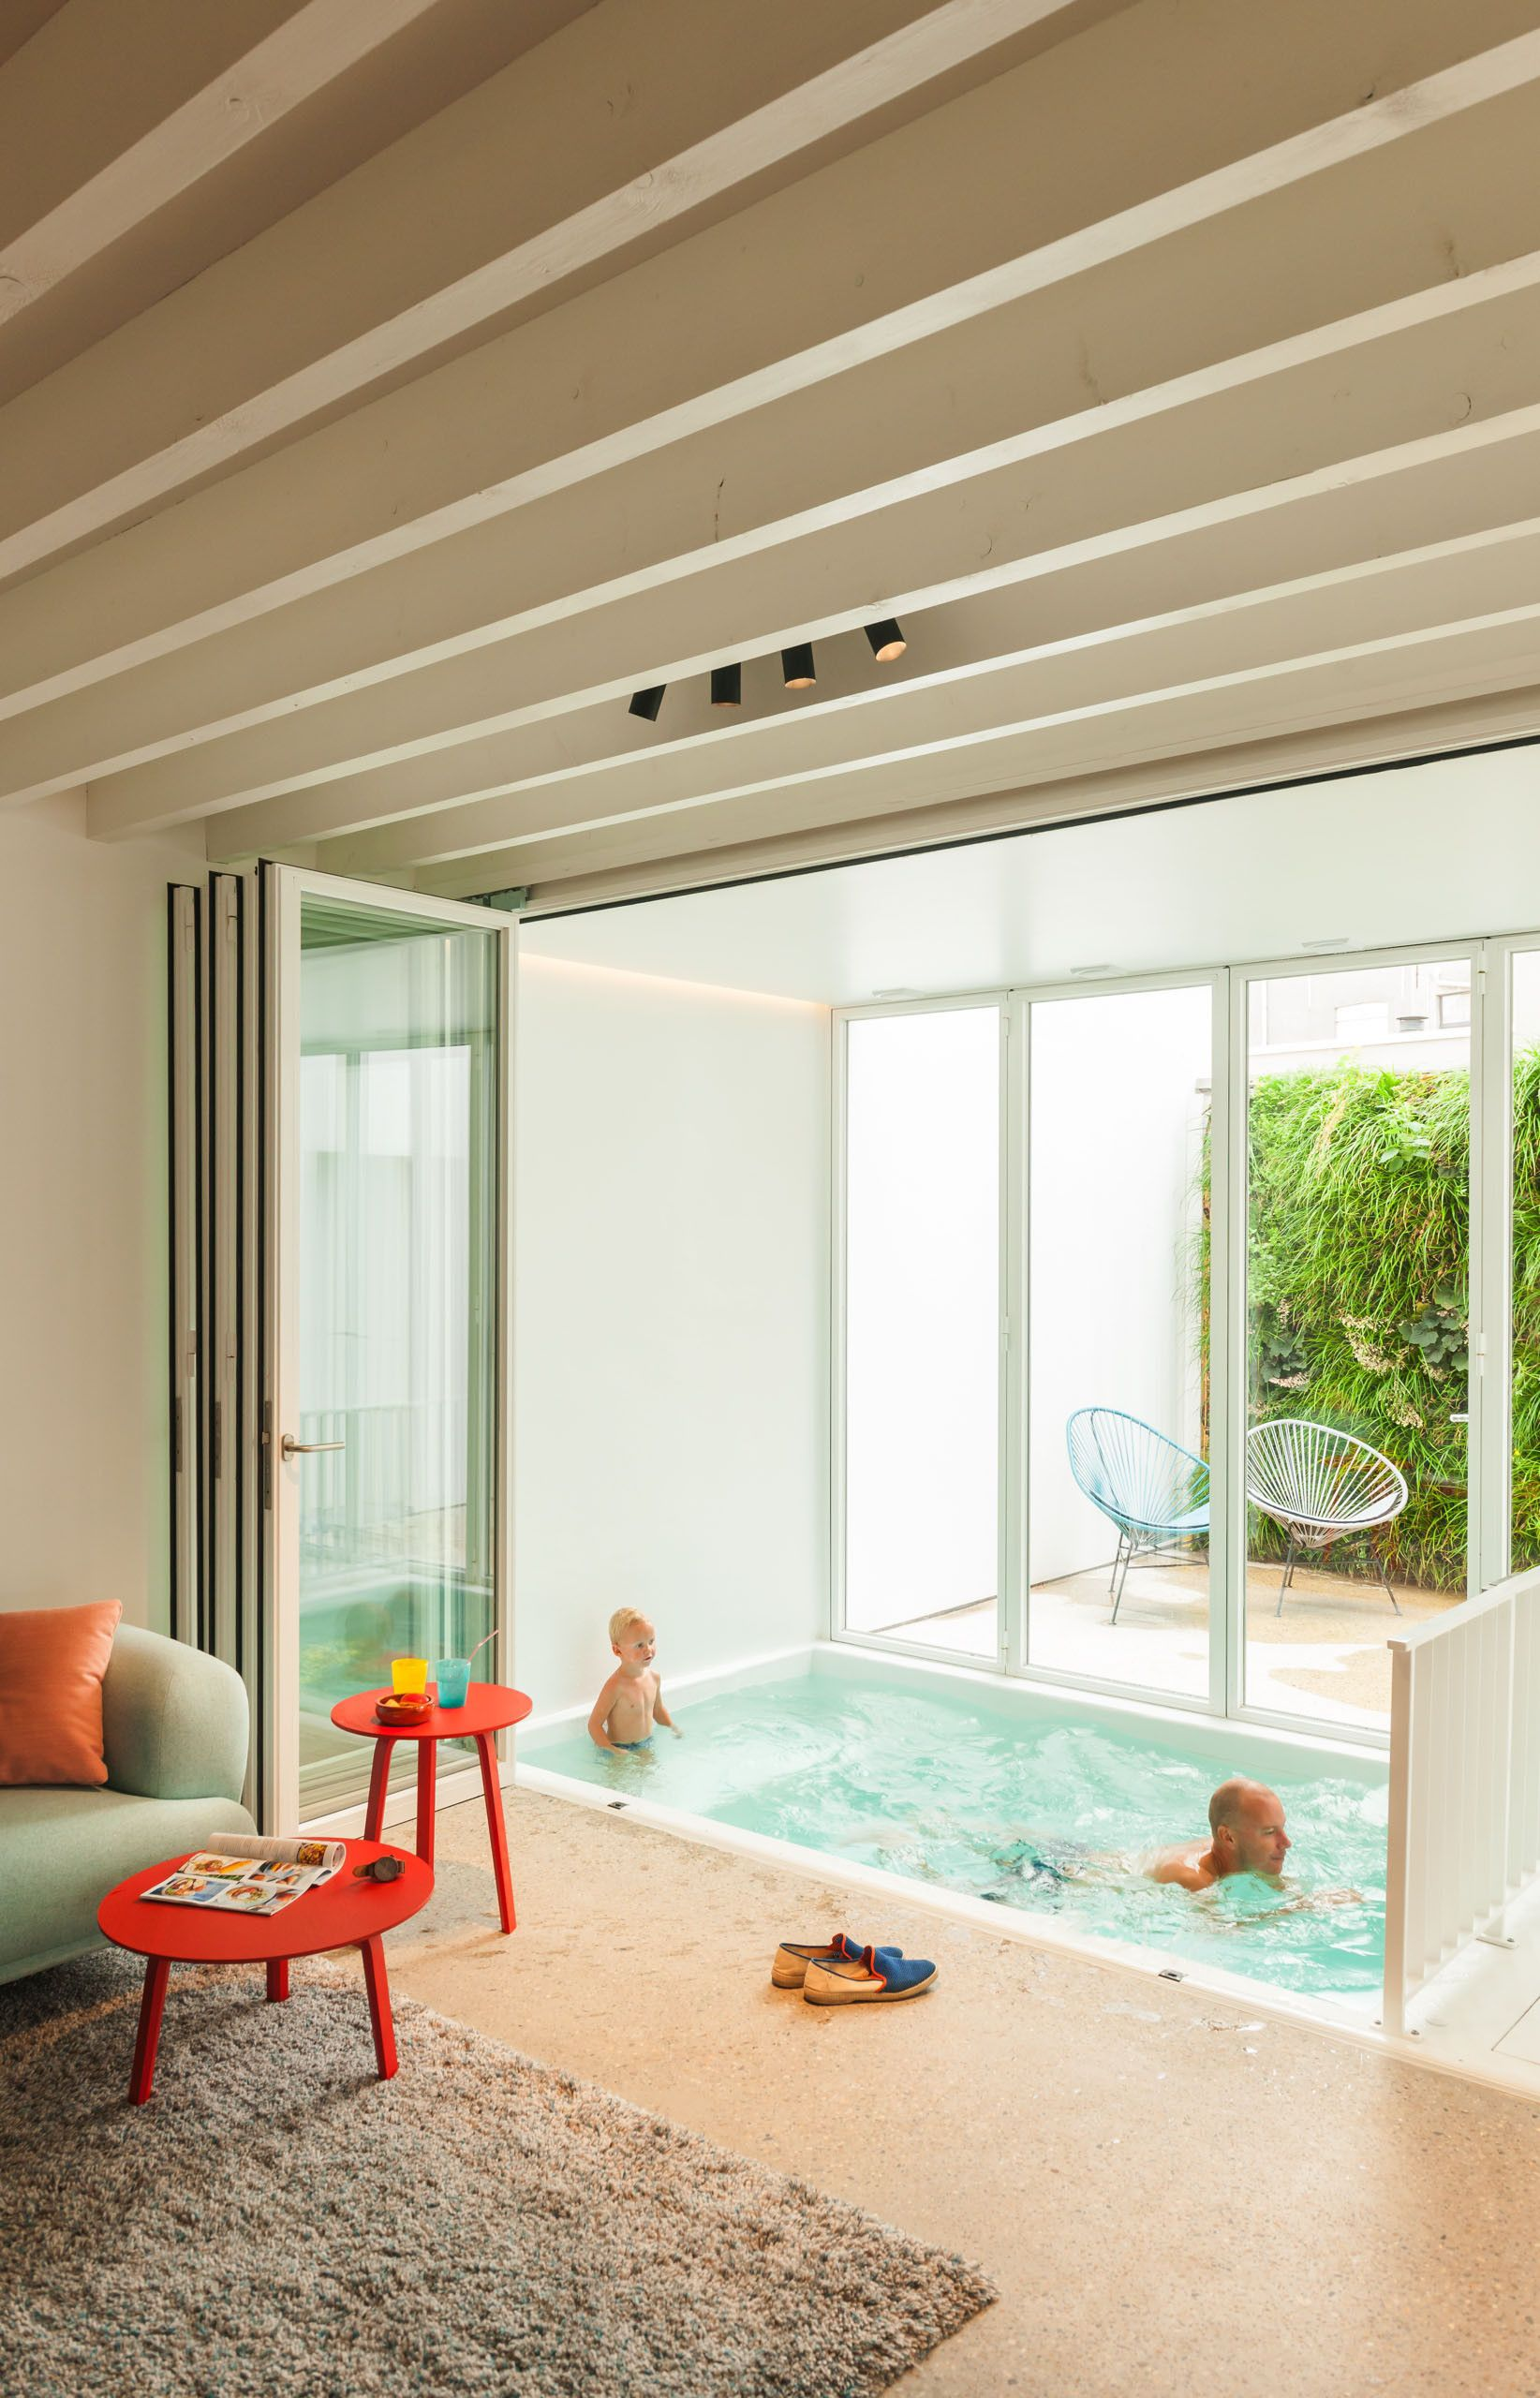 Pool Im Garten Mit Gegenstromanlage Gallery Of House Lks P8 Architecten 7 In 2019 Wellness Oasen